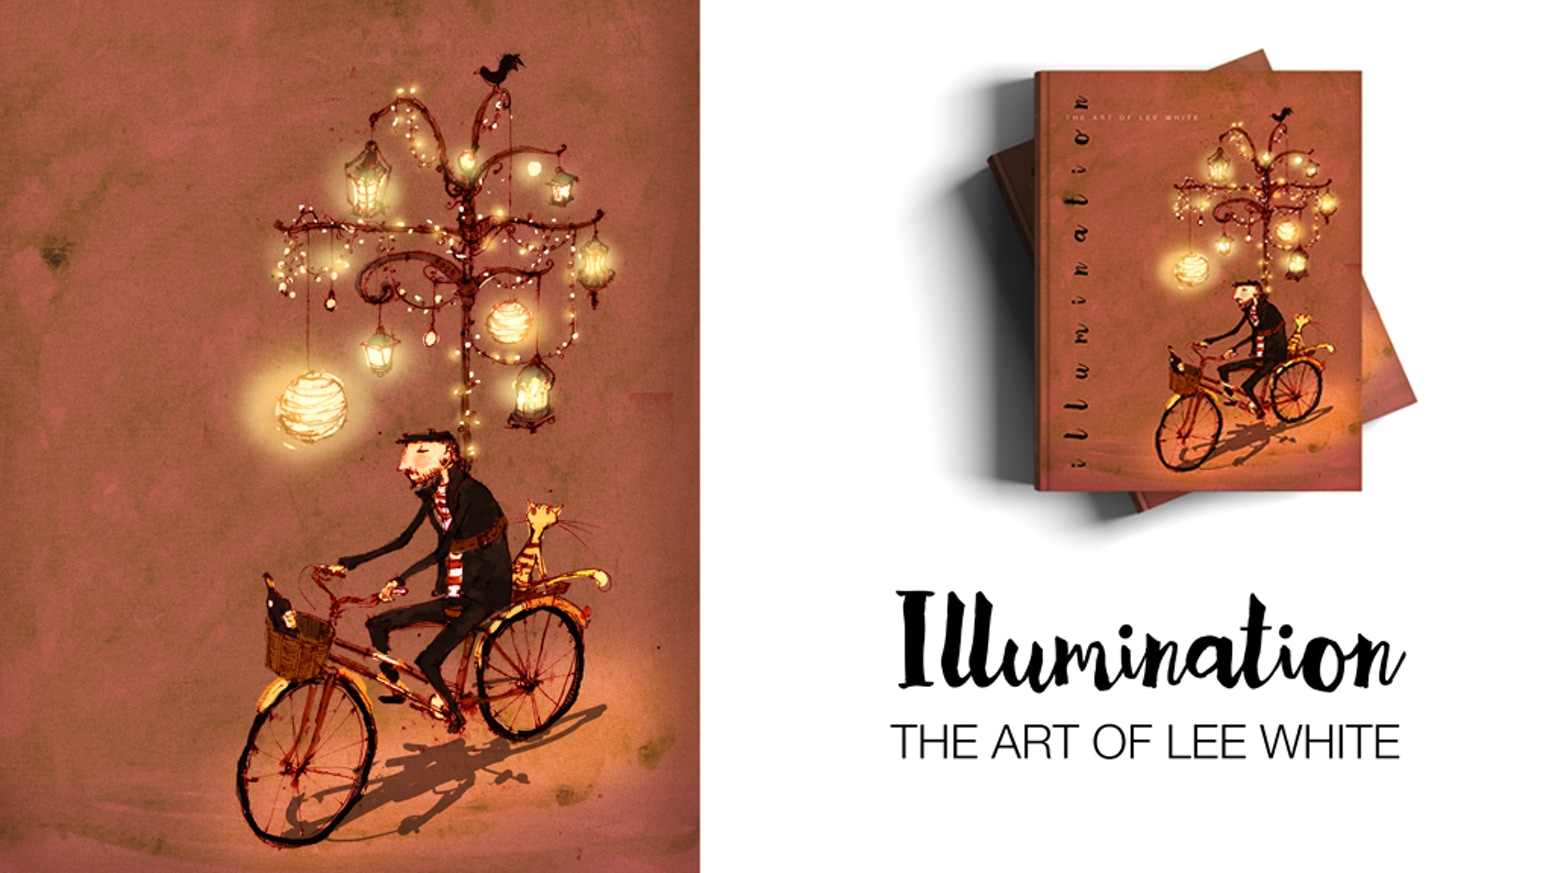 This hardcover coffee table book showcases all the whimsical illustrations from professional book illustrator Lee White.